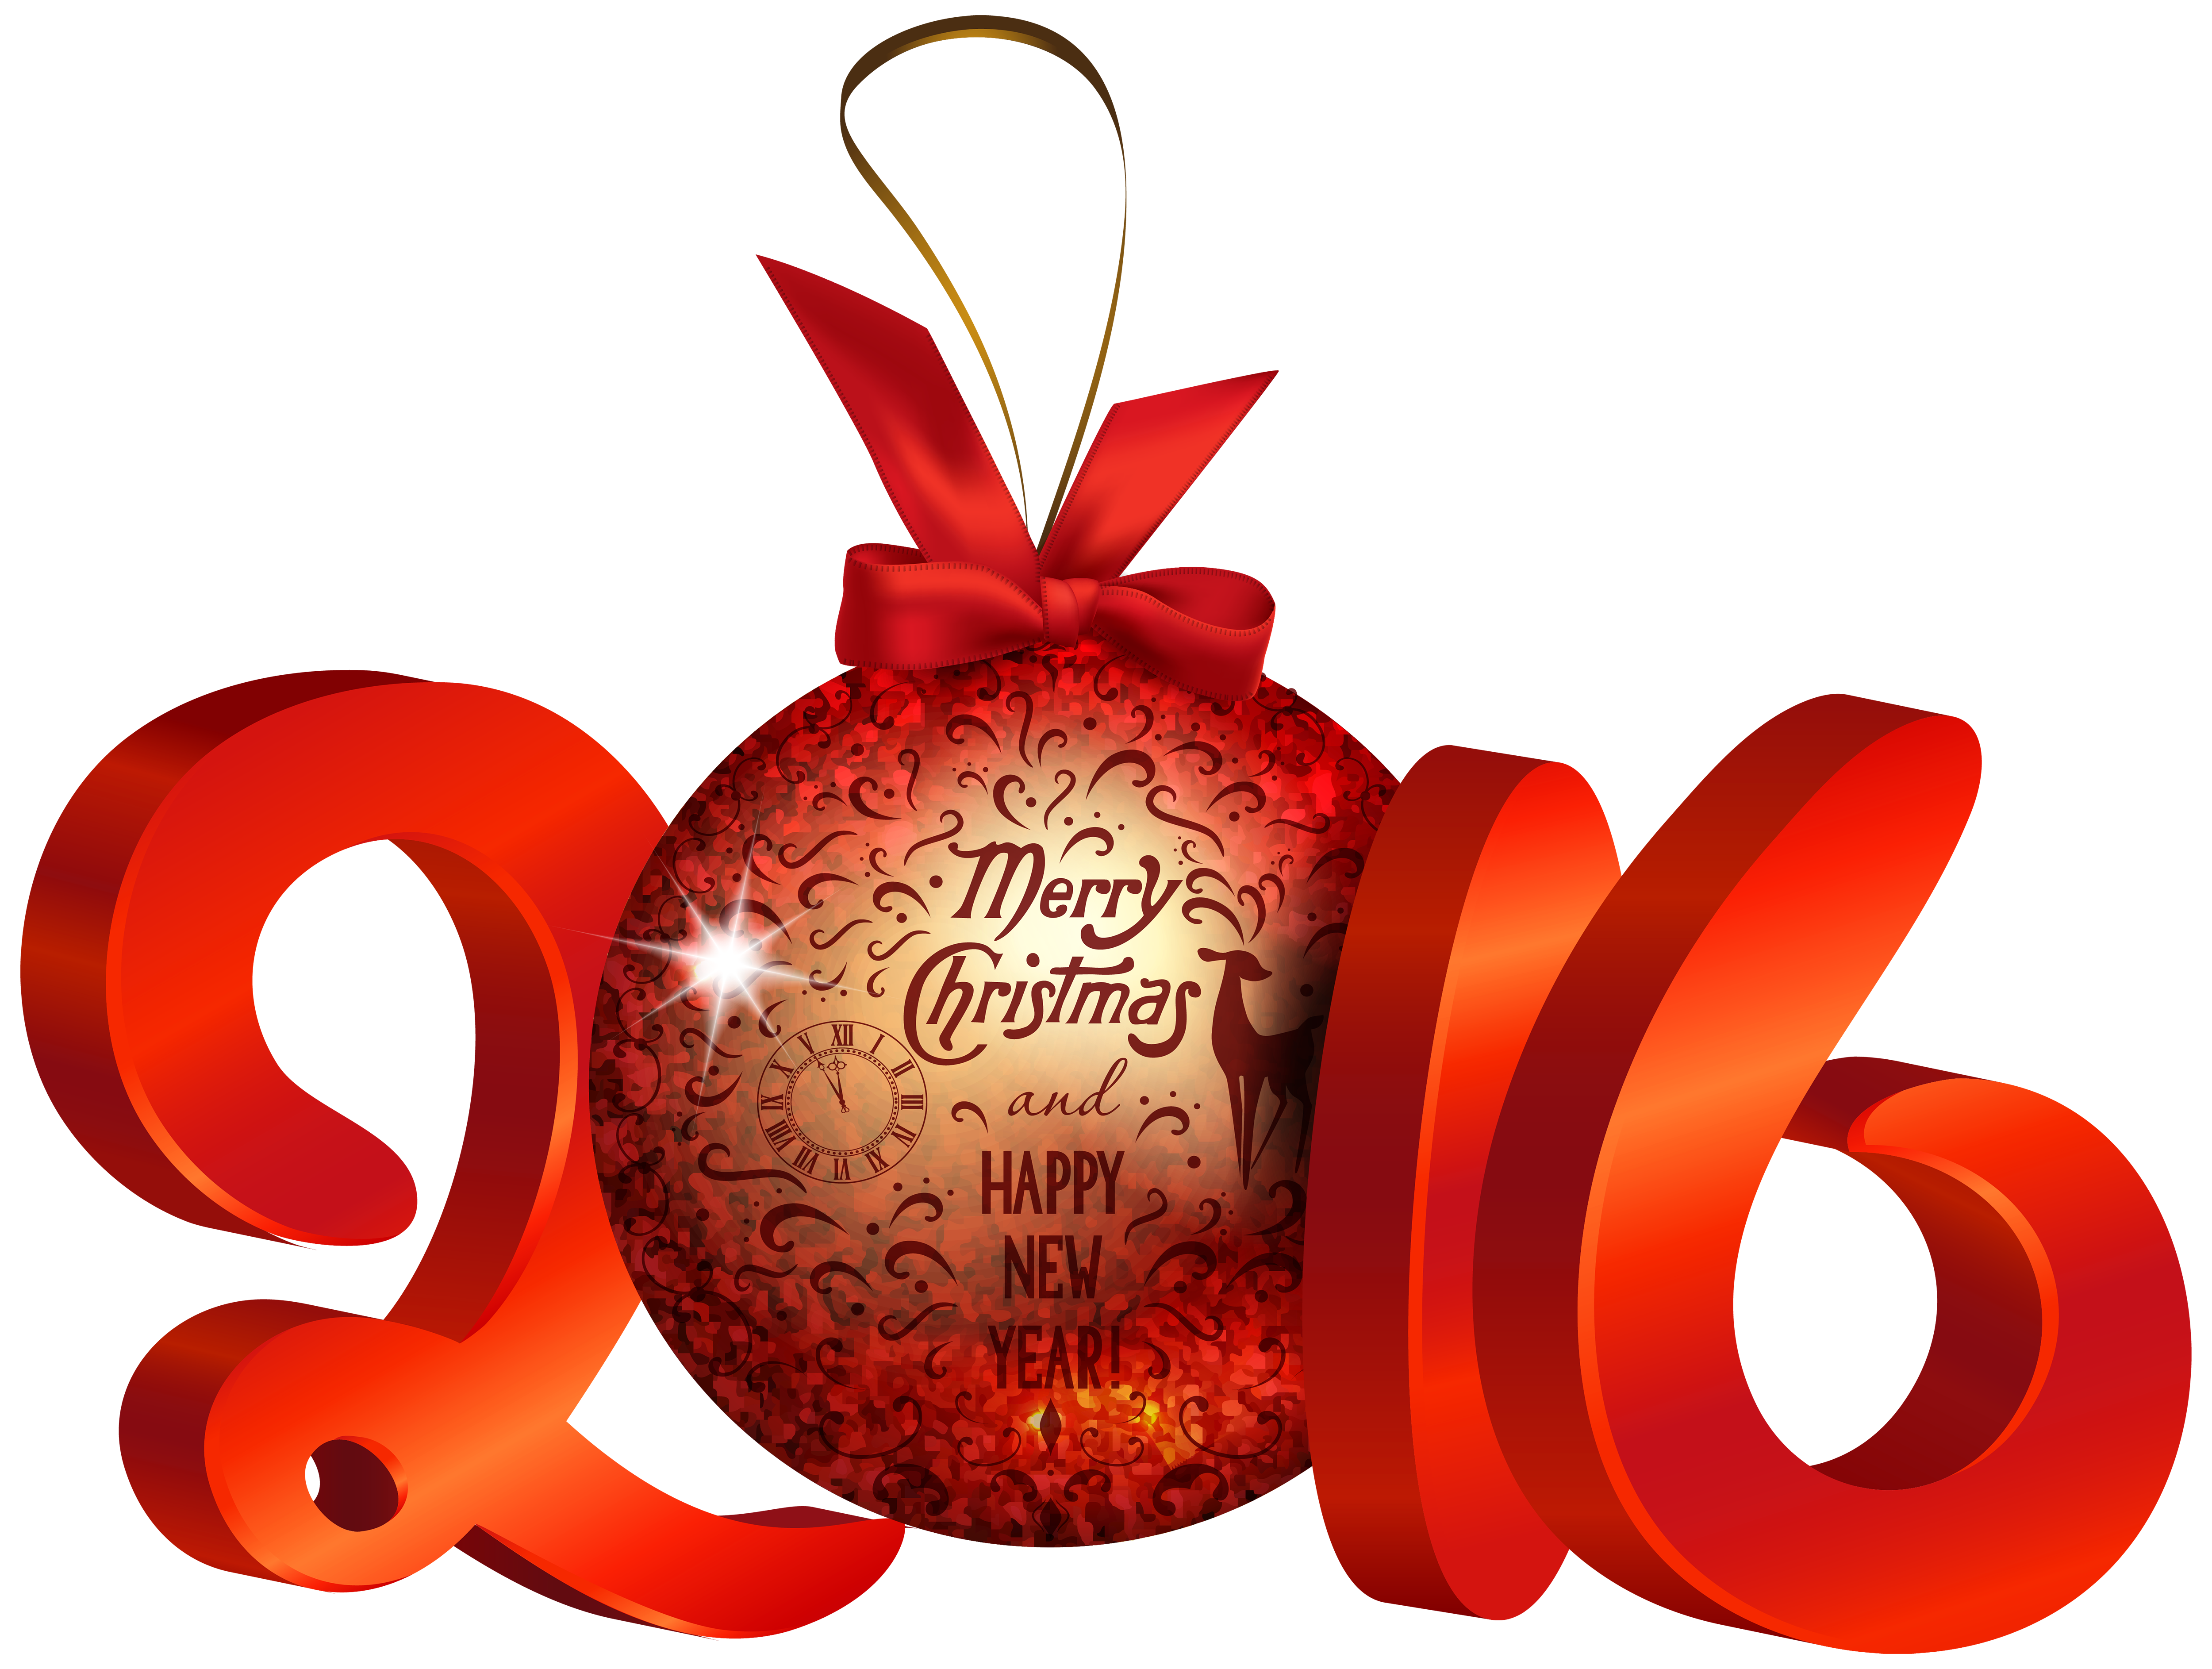 2016 clipart christmas. Red decoration png image